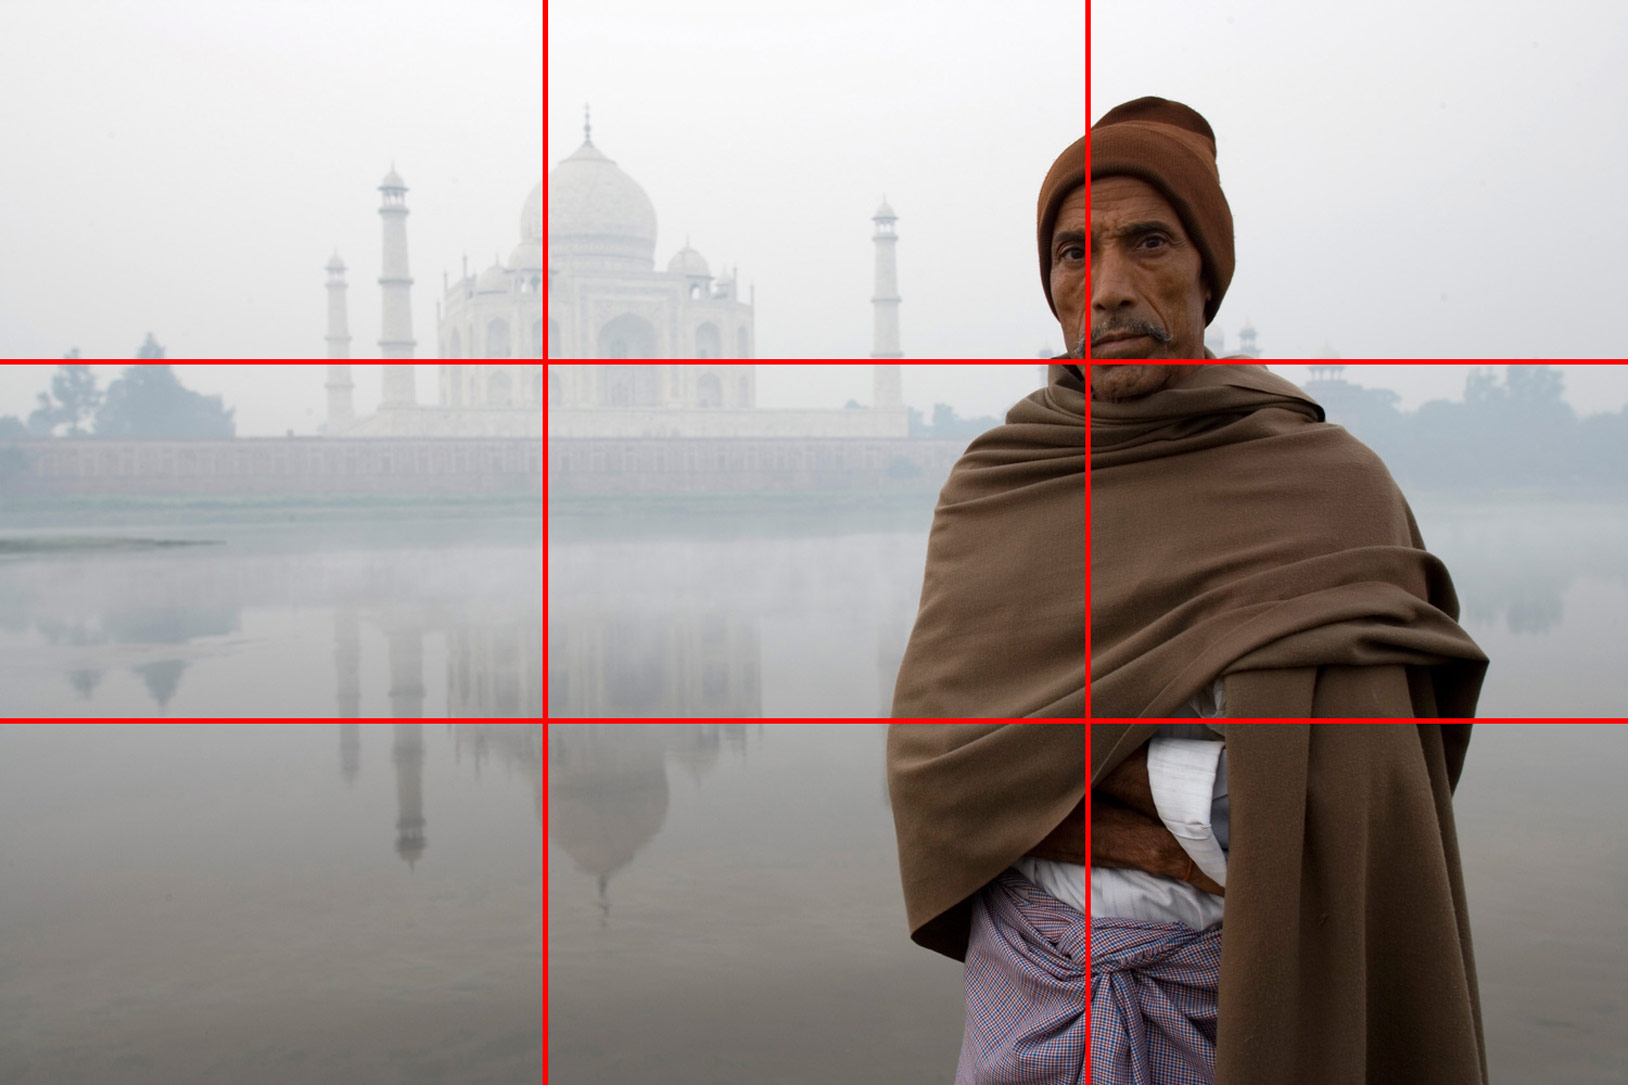 Example of rule of thirds composition